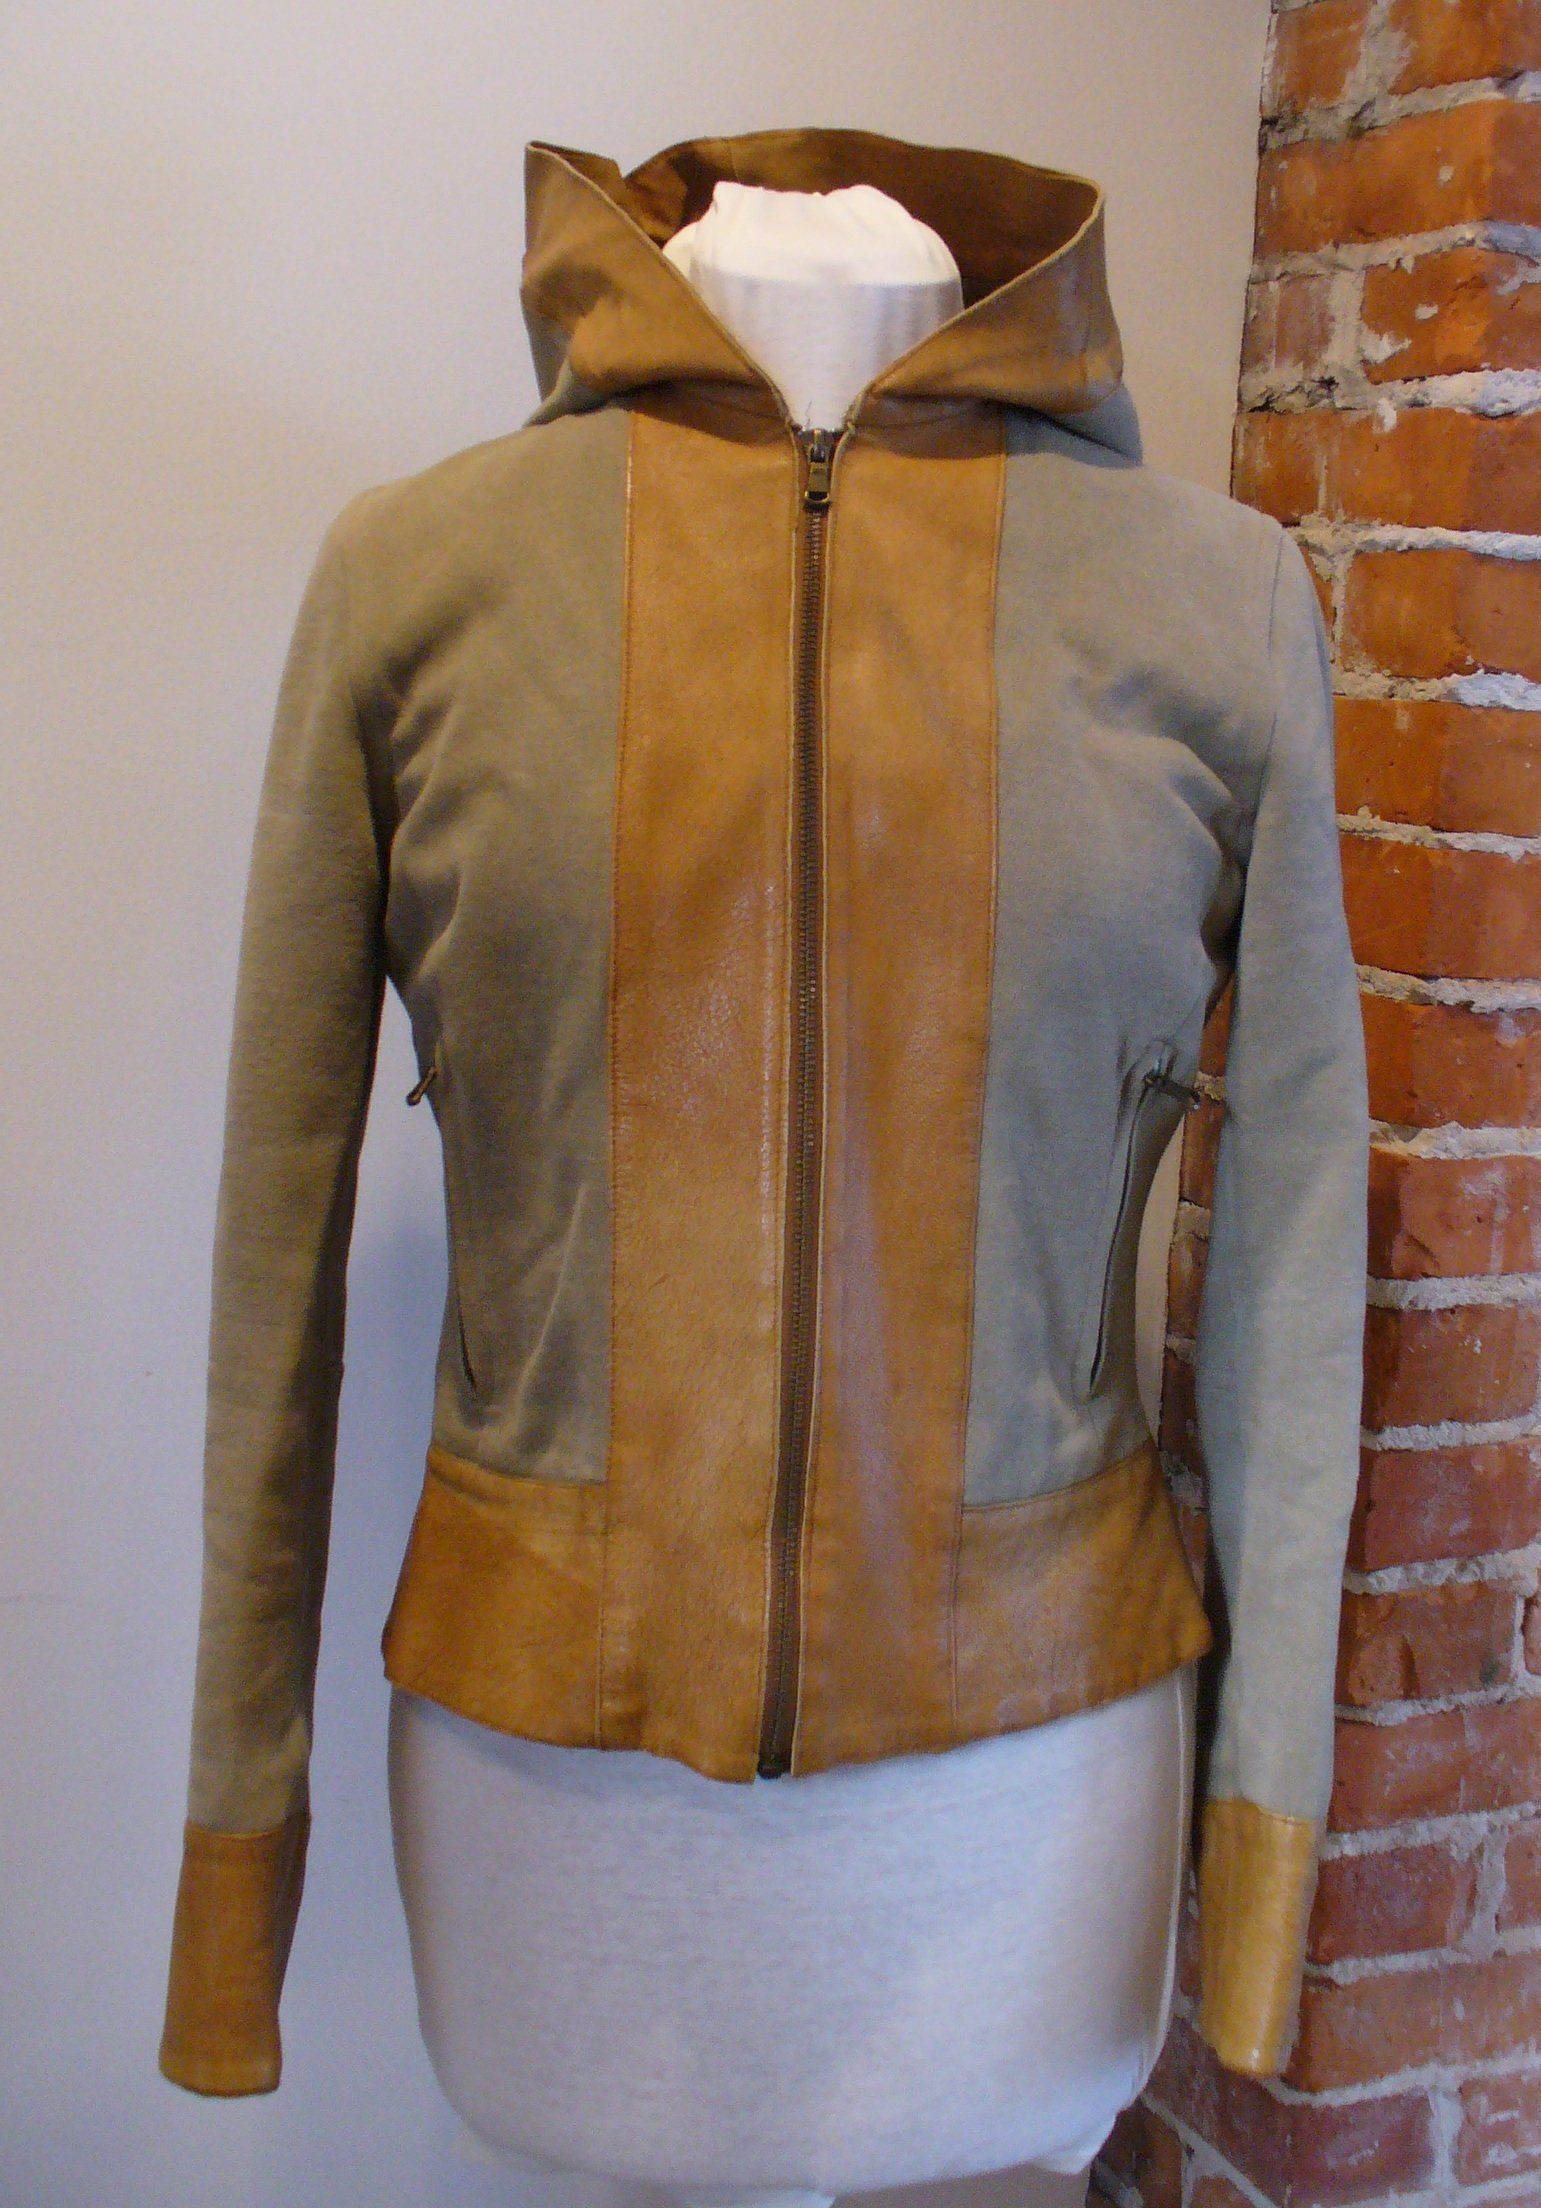 Tenex Y Valades Made in Italy Fabric &Leather Hooded